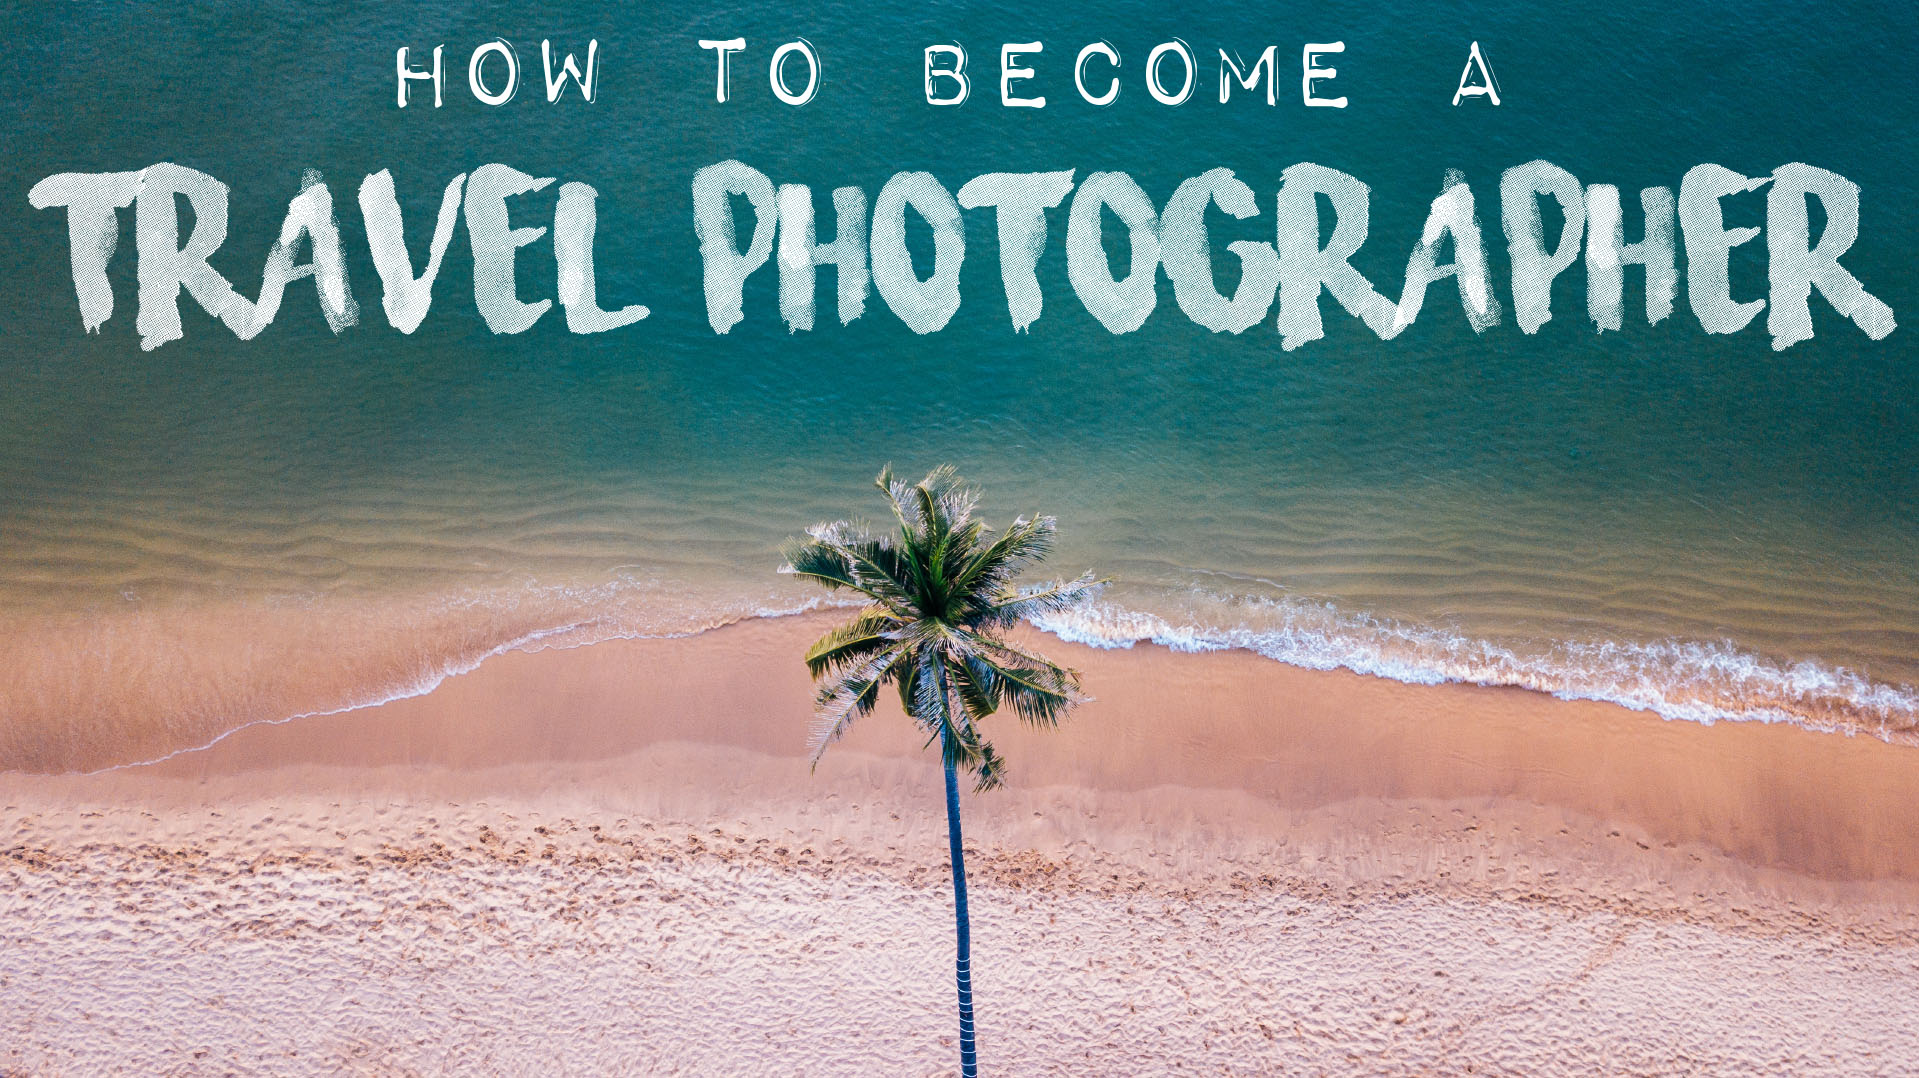 how to become a travel photographer.jpg